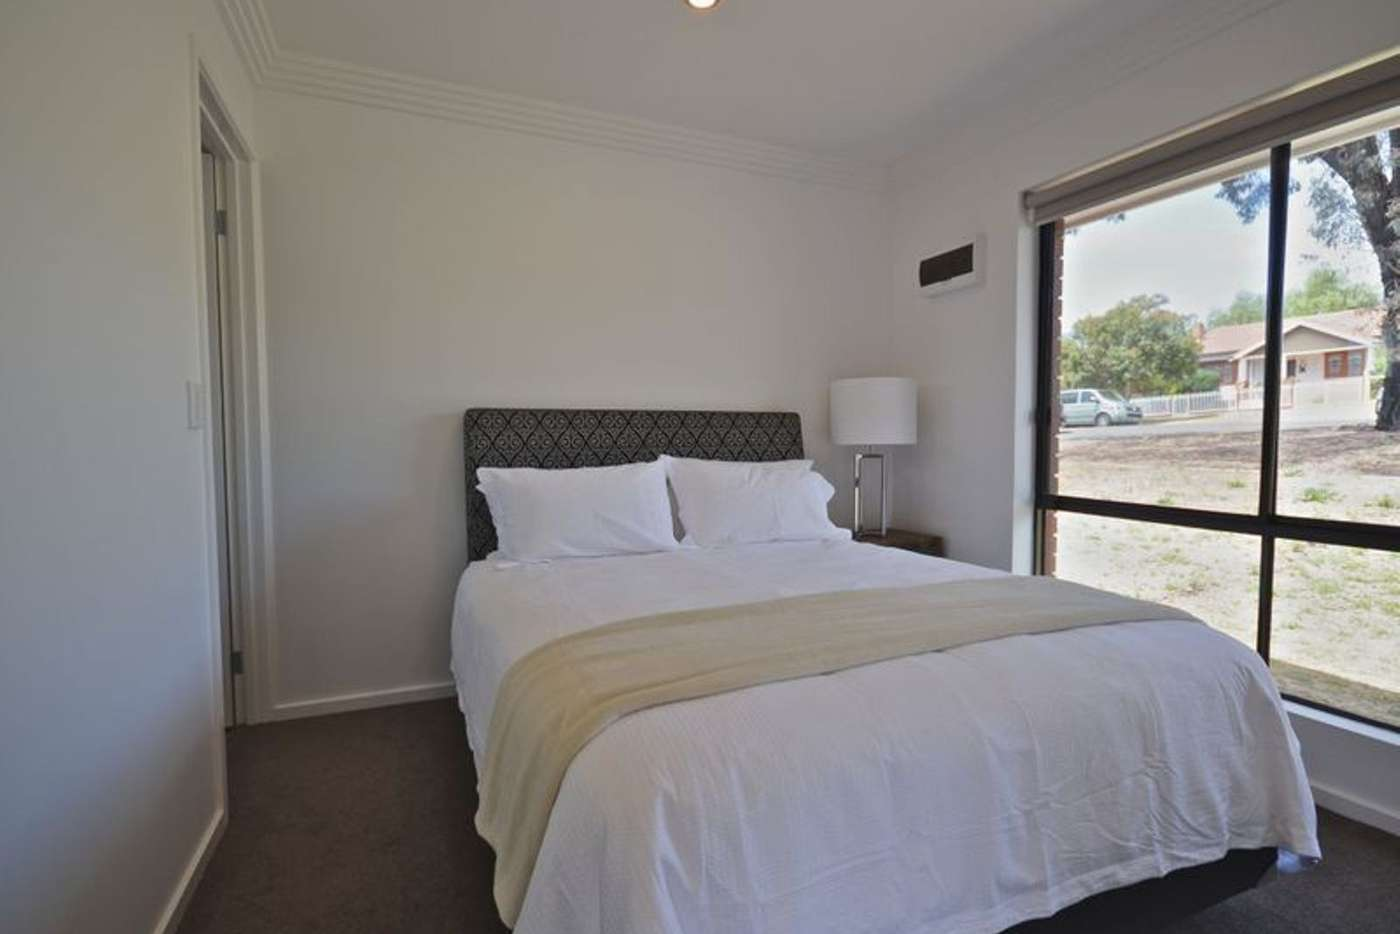 Sixth view of Homely house listing, 1/9A Smith Street, North Bendigo VIC 3550